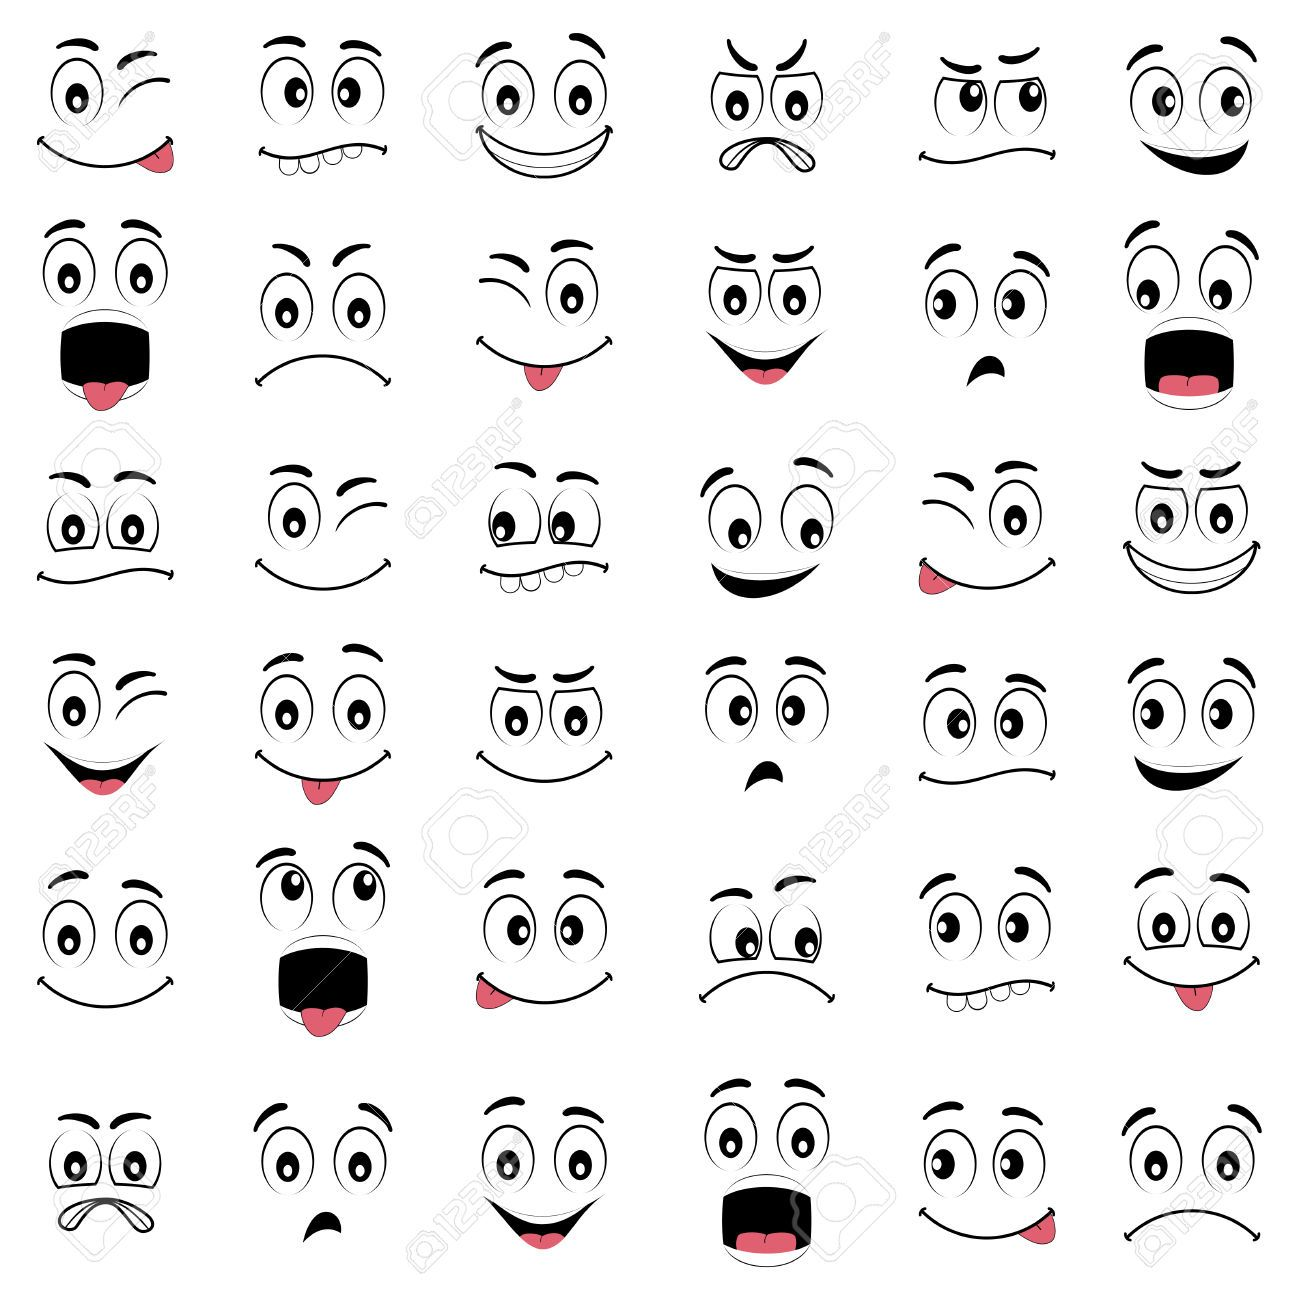 hight resolution of pin by ednor therriault on cartoon eyes cartoon faces cartoon cartoon face diagram